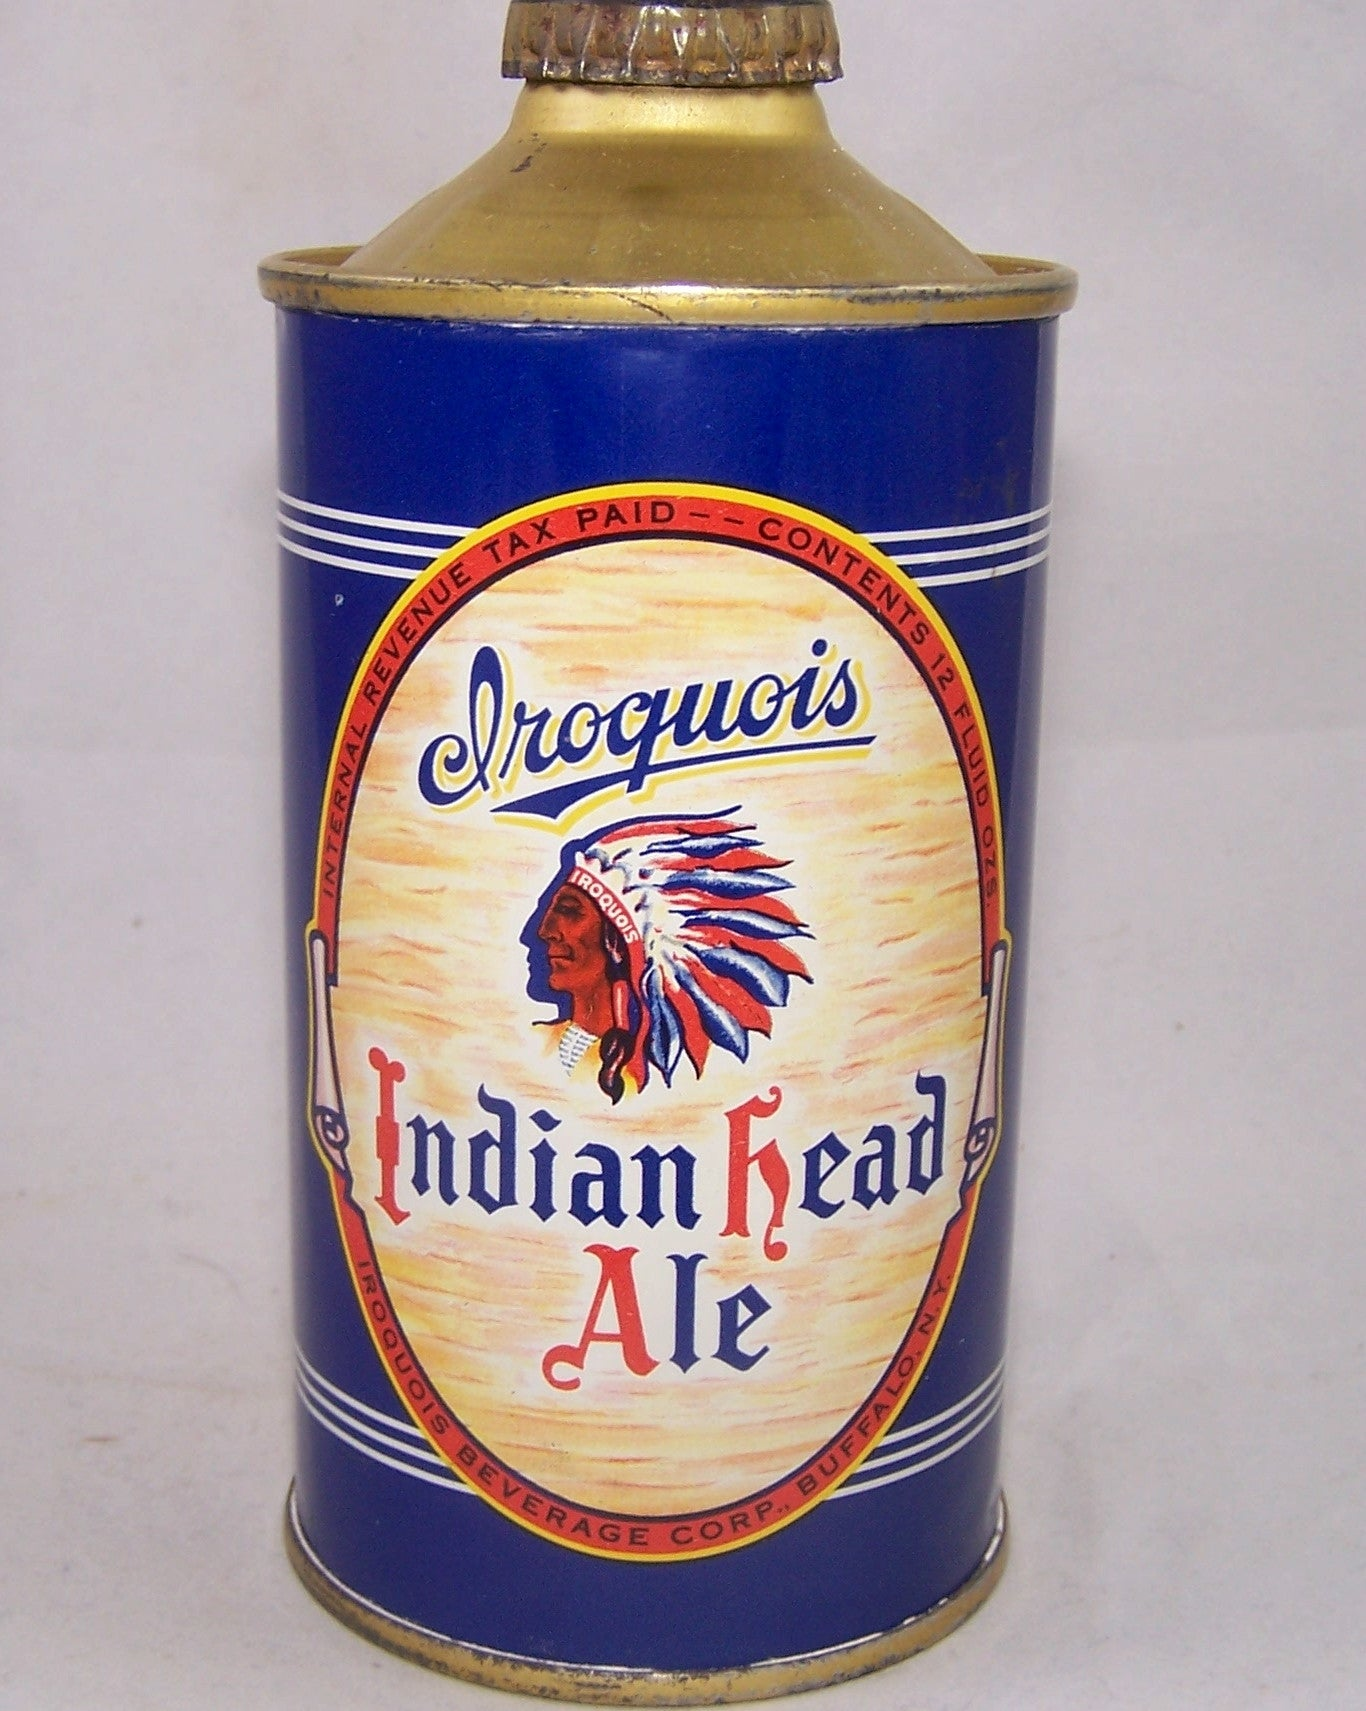 Iroquois Indian Head Ale, USBC 170-06, Grade A1+ Sold on 03/15/17